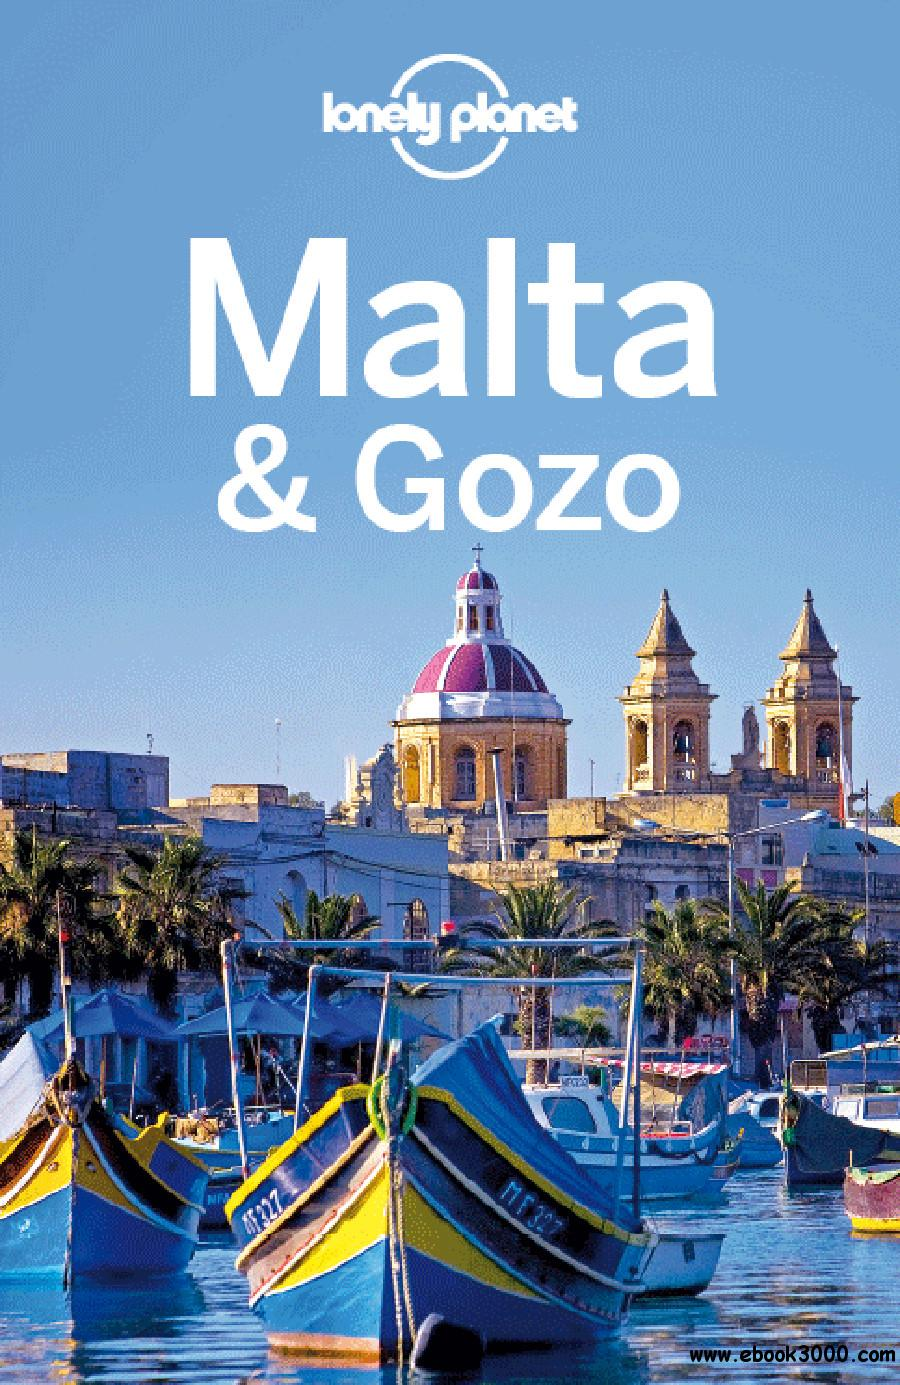 Lonely Planet Malta & Gozo (Country Guide), 5 edition free download